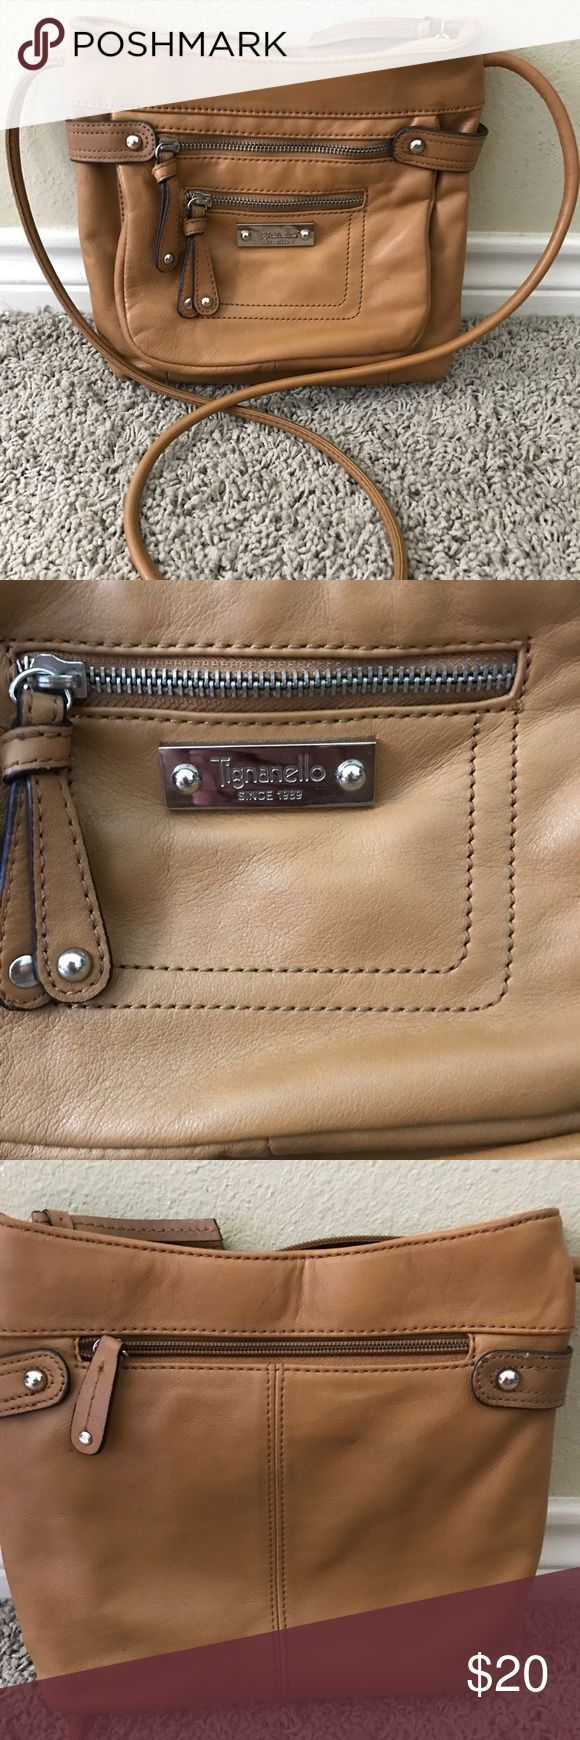 Tignanello Leather Crossbody Bag Super cute crossbody bag, all leather.  I carried a few times to some craft fairs, etc.  Lots of pockets!  Smoke free, pet free home.  No blemishes, great condition! 👍🏼 Tignanello Bags Crossbody Bags